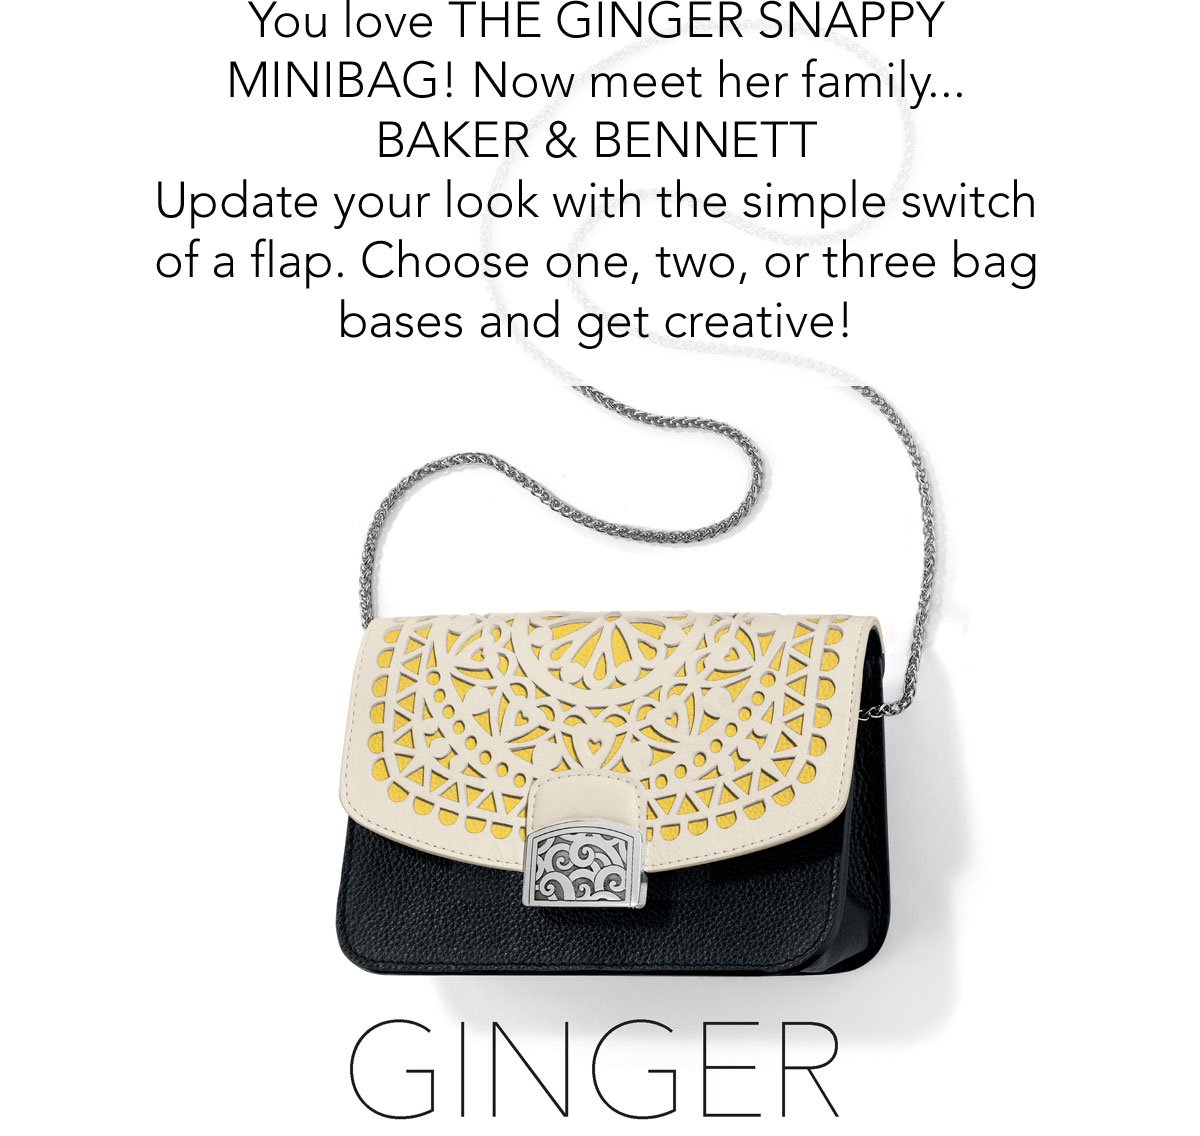 0d6f72899e04 You love the Ginger Snappy Minibag! - Now meet her family... Baker